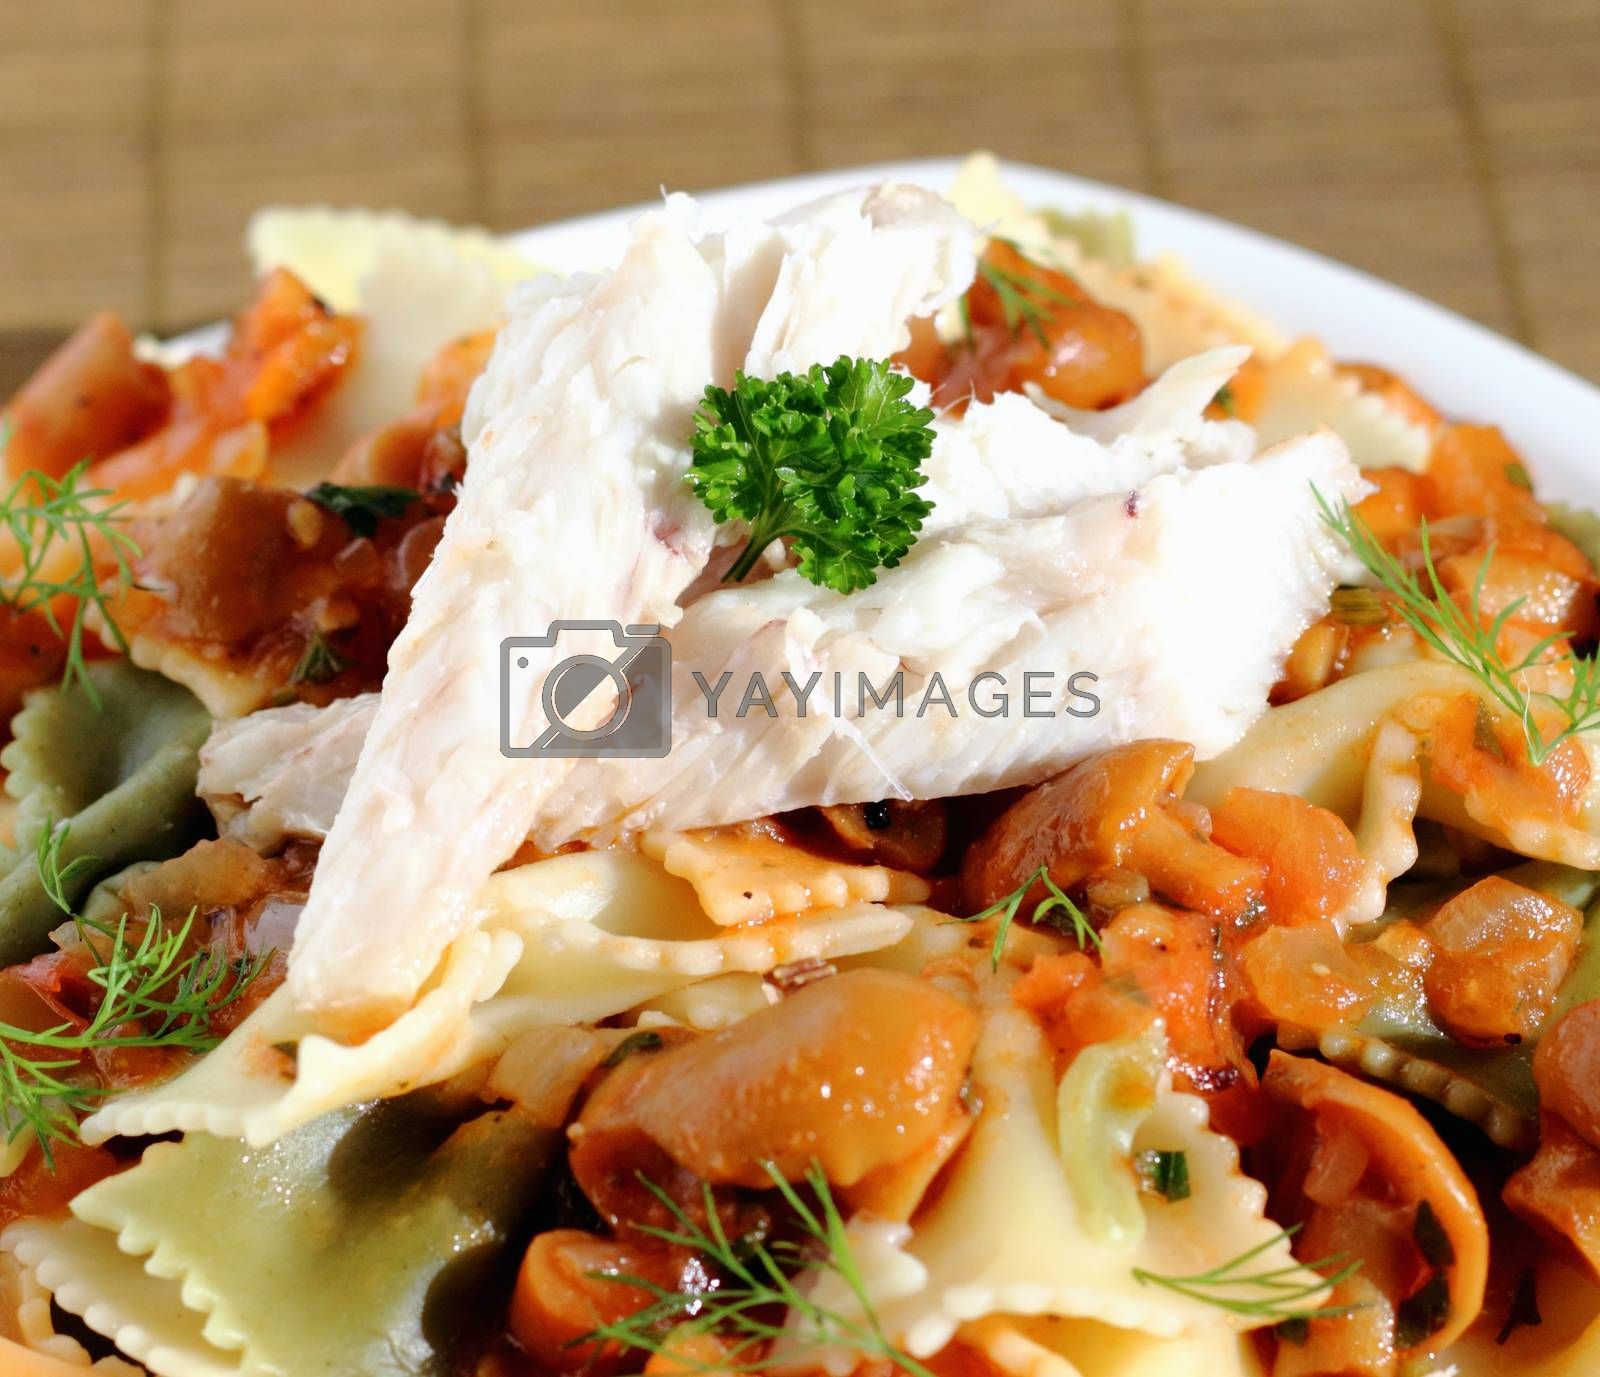 Royalty free image of Pasta with mushroom sauce and fish by openas